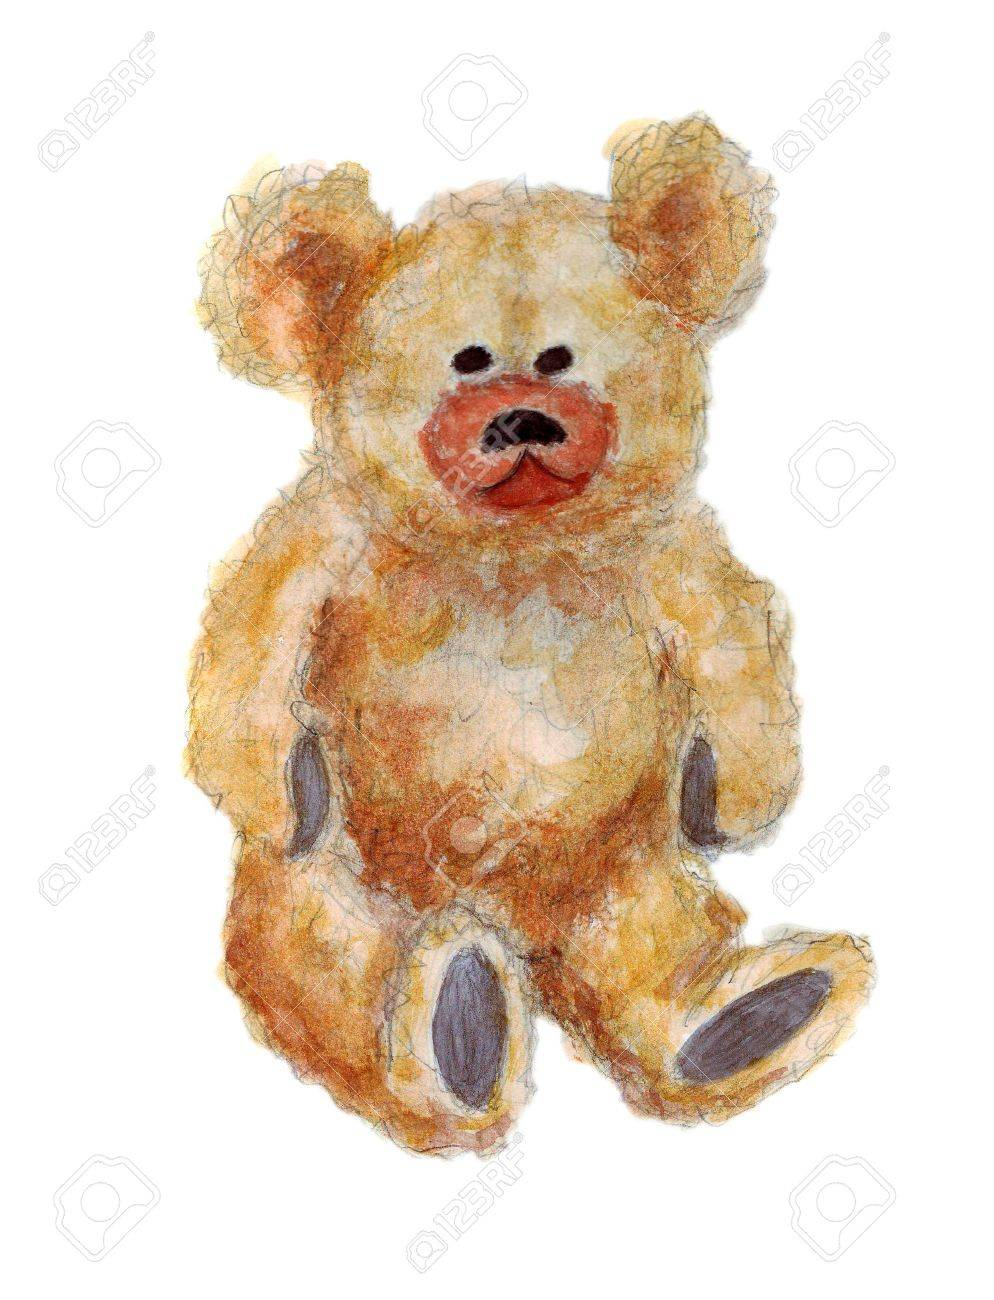 Watercolor artwork of a cute fluffy teddy bear over white background Stock Photo - 7162818